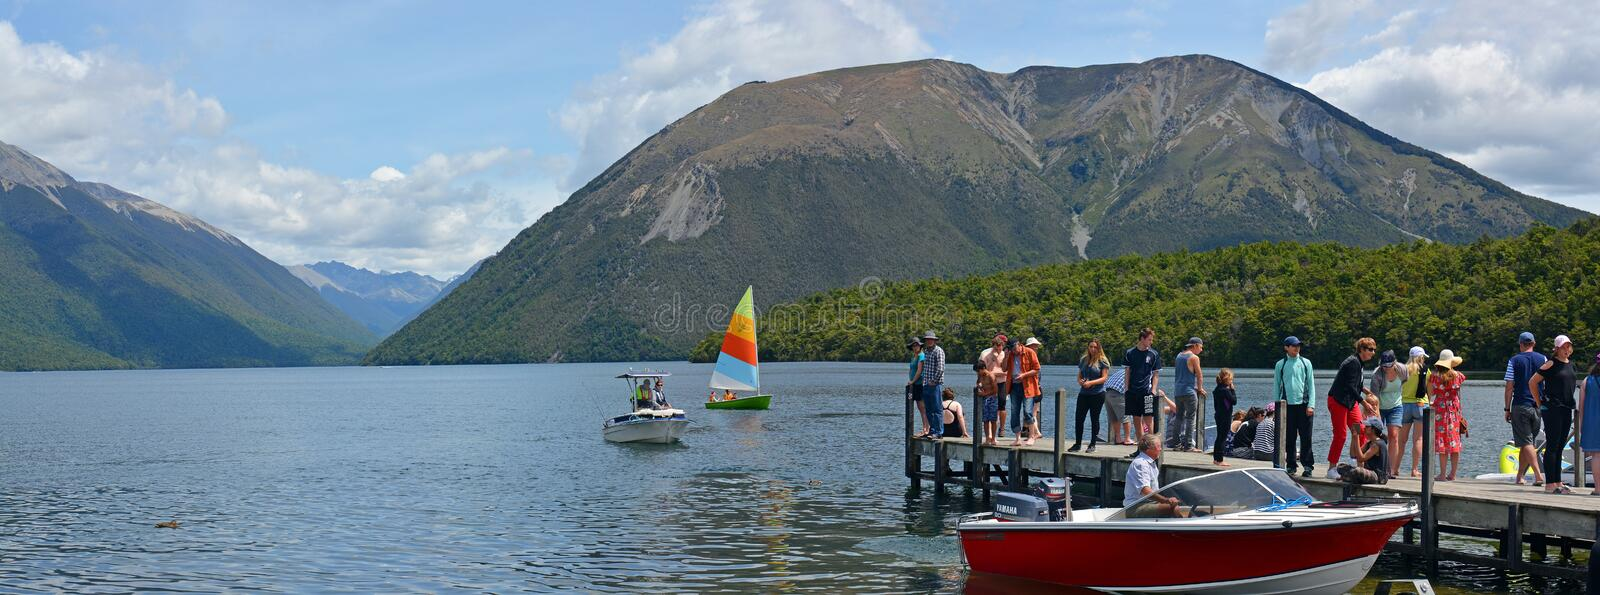 People on Holiday at Lake Rotoiti in Nelson Lakes district New Z stock photography